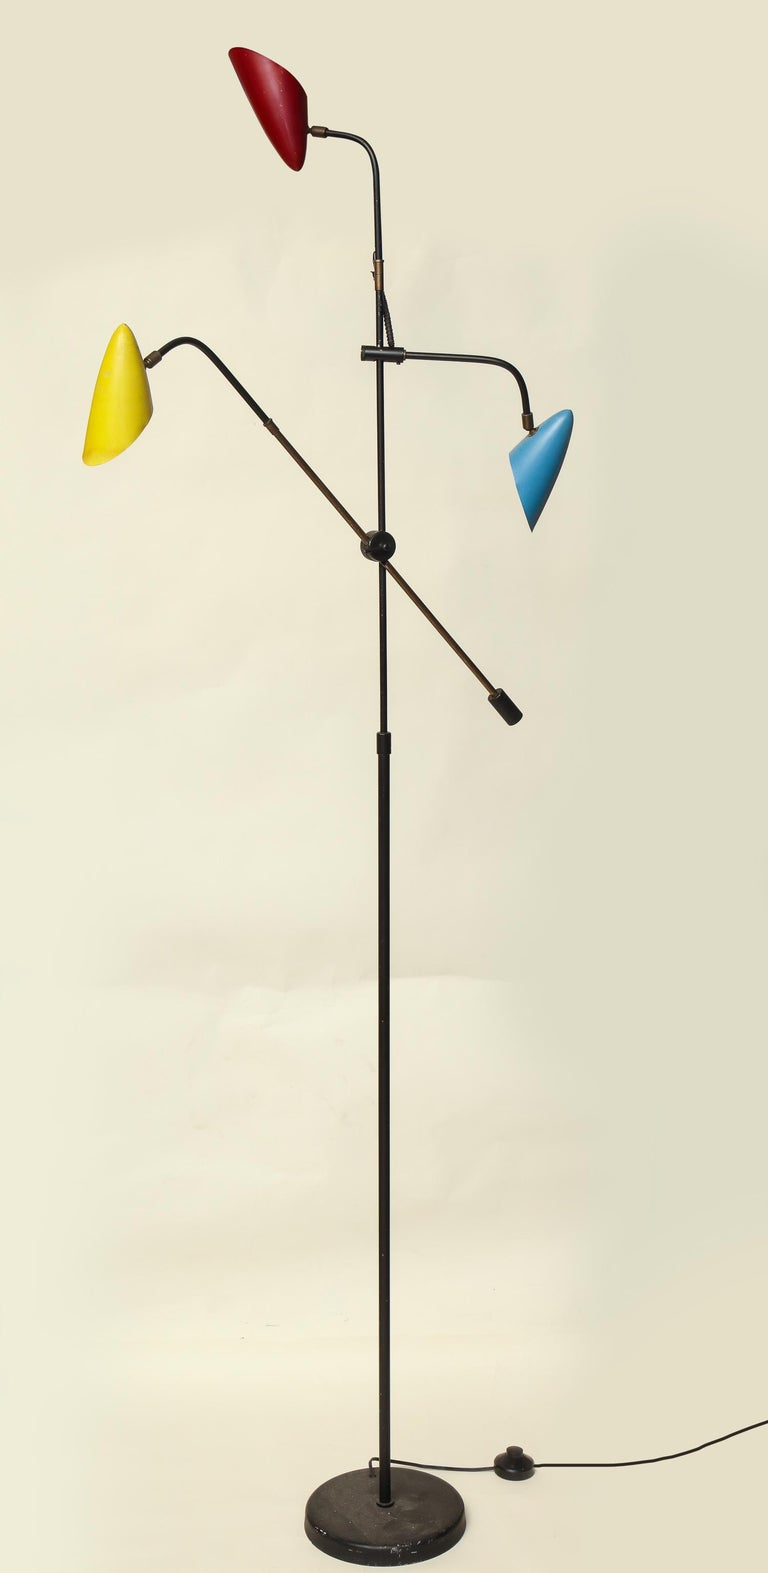 Floor Lamp Articulated Sculptural Mid-Century Modern, France, 1950s For Sale 4